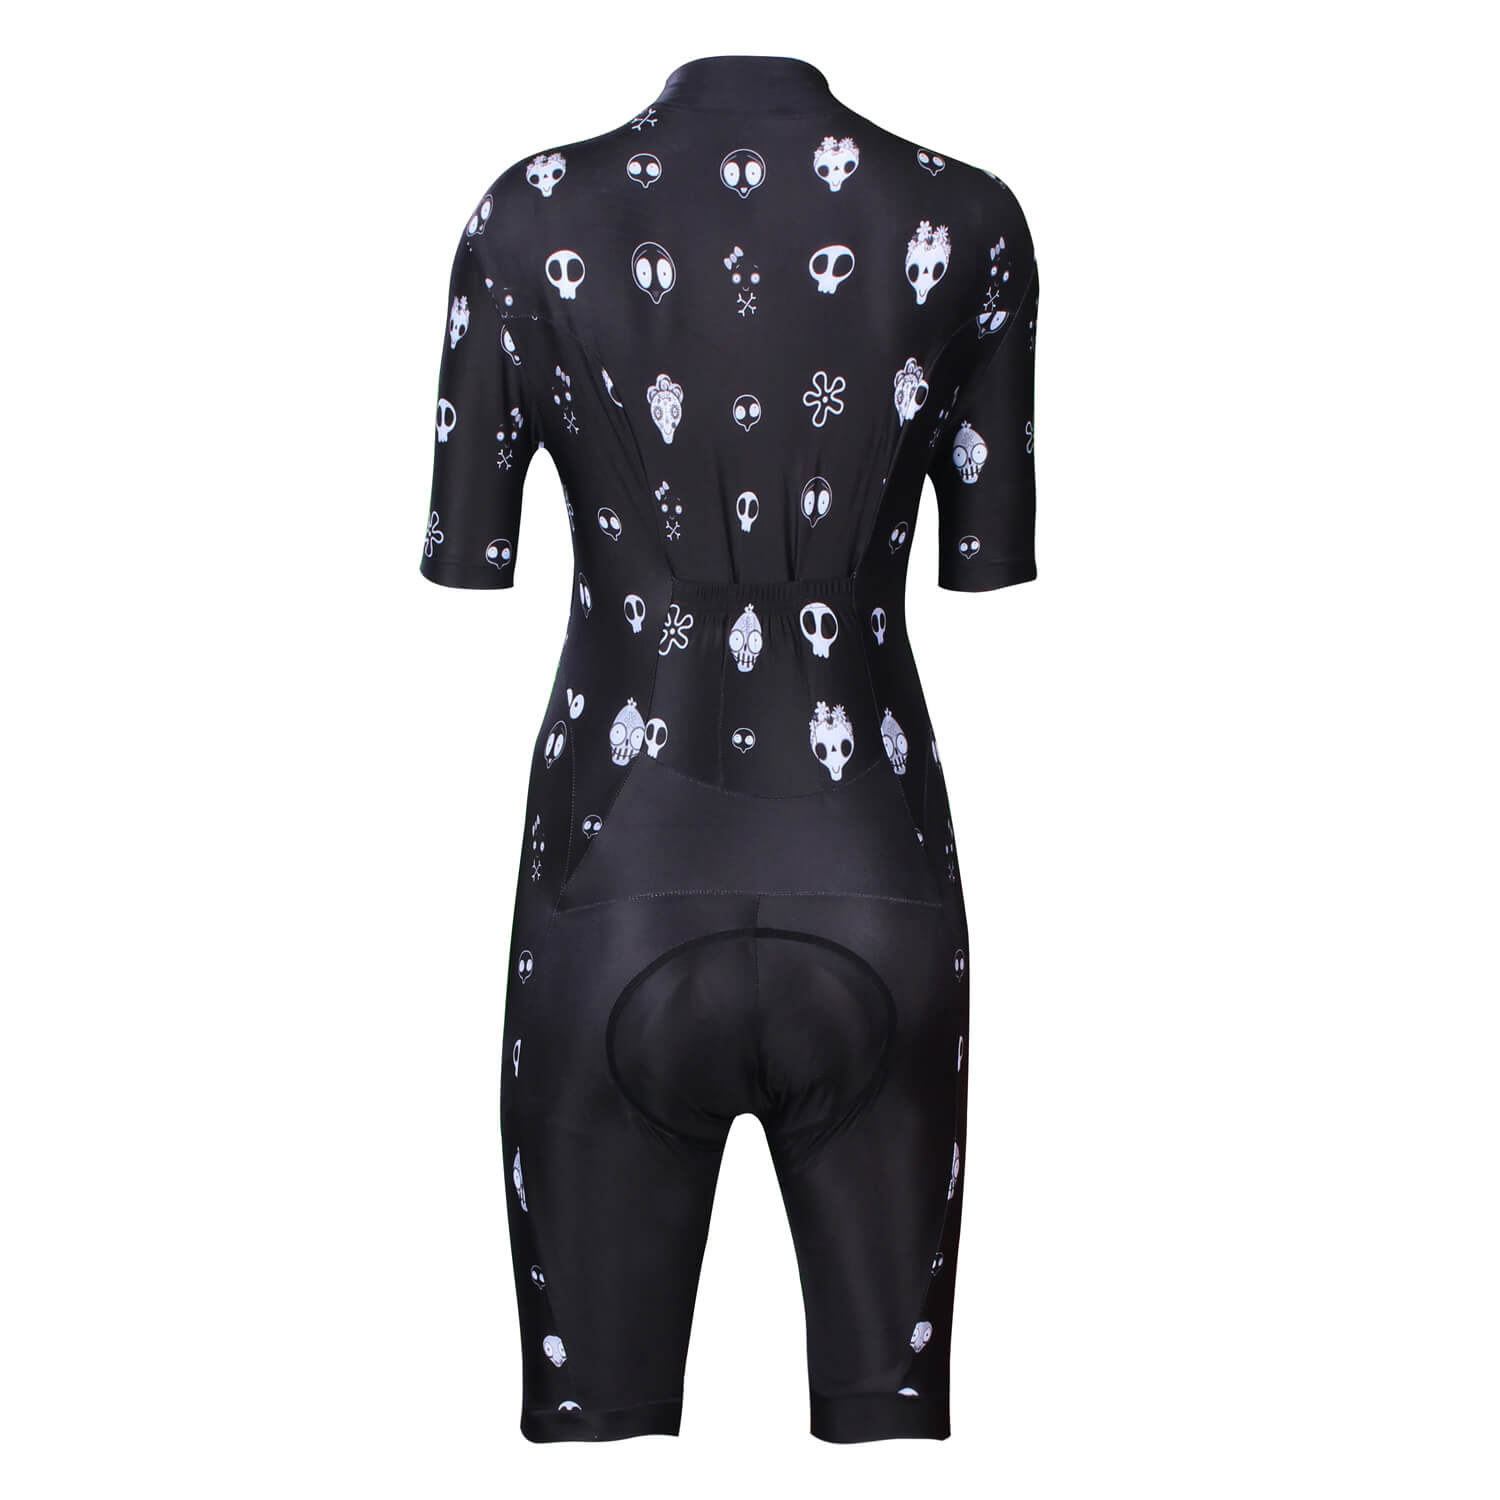 Black Women Cycling Jumpsuits